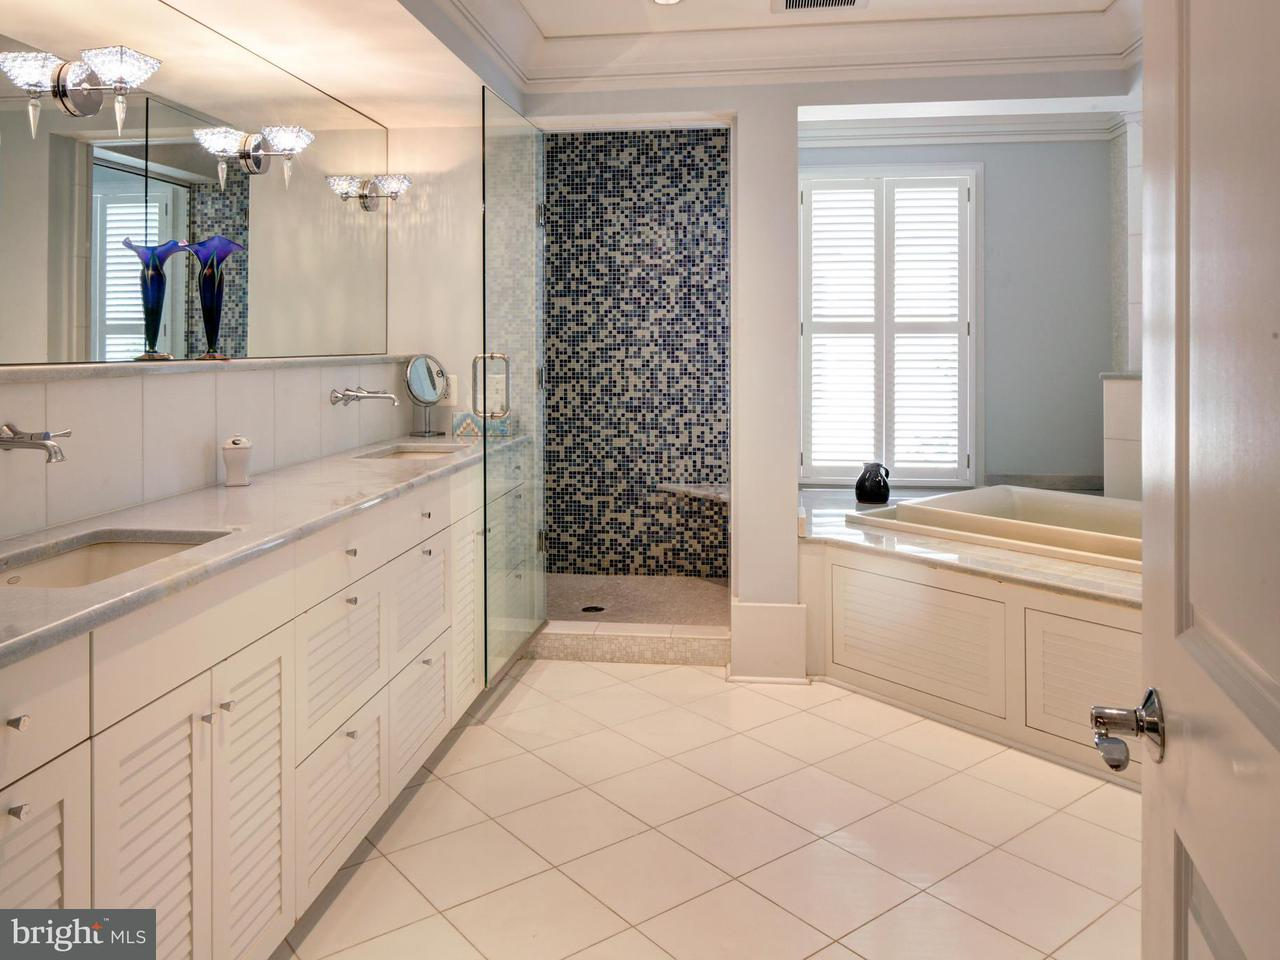 Additional photo for property listing at 75 Charles Street 75 Charles Street Annapolis, Maryland 21401 United States